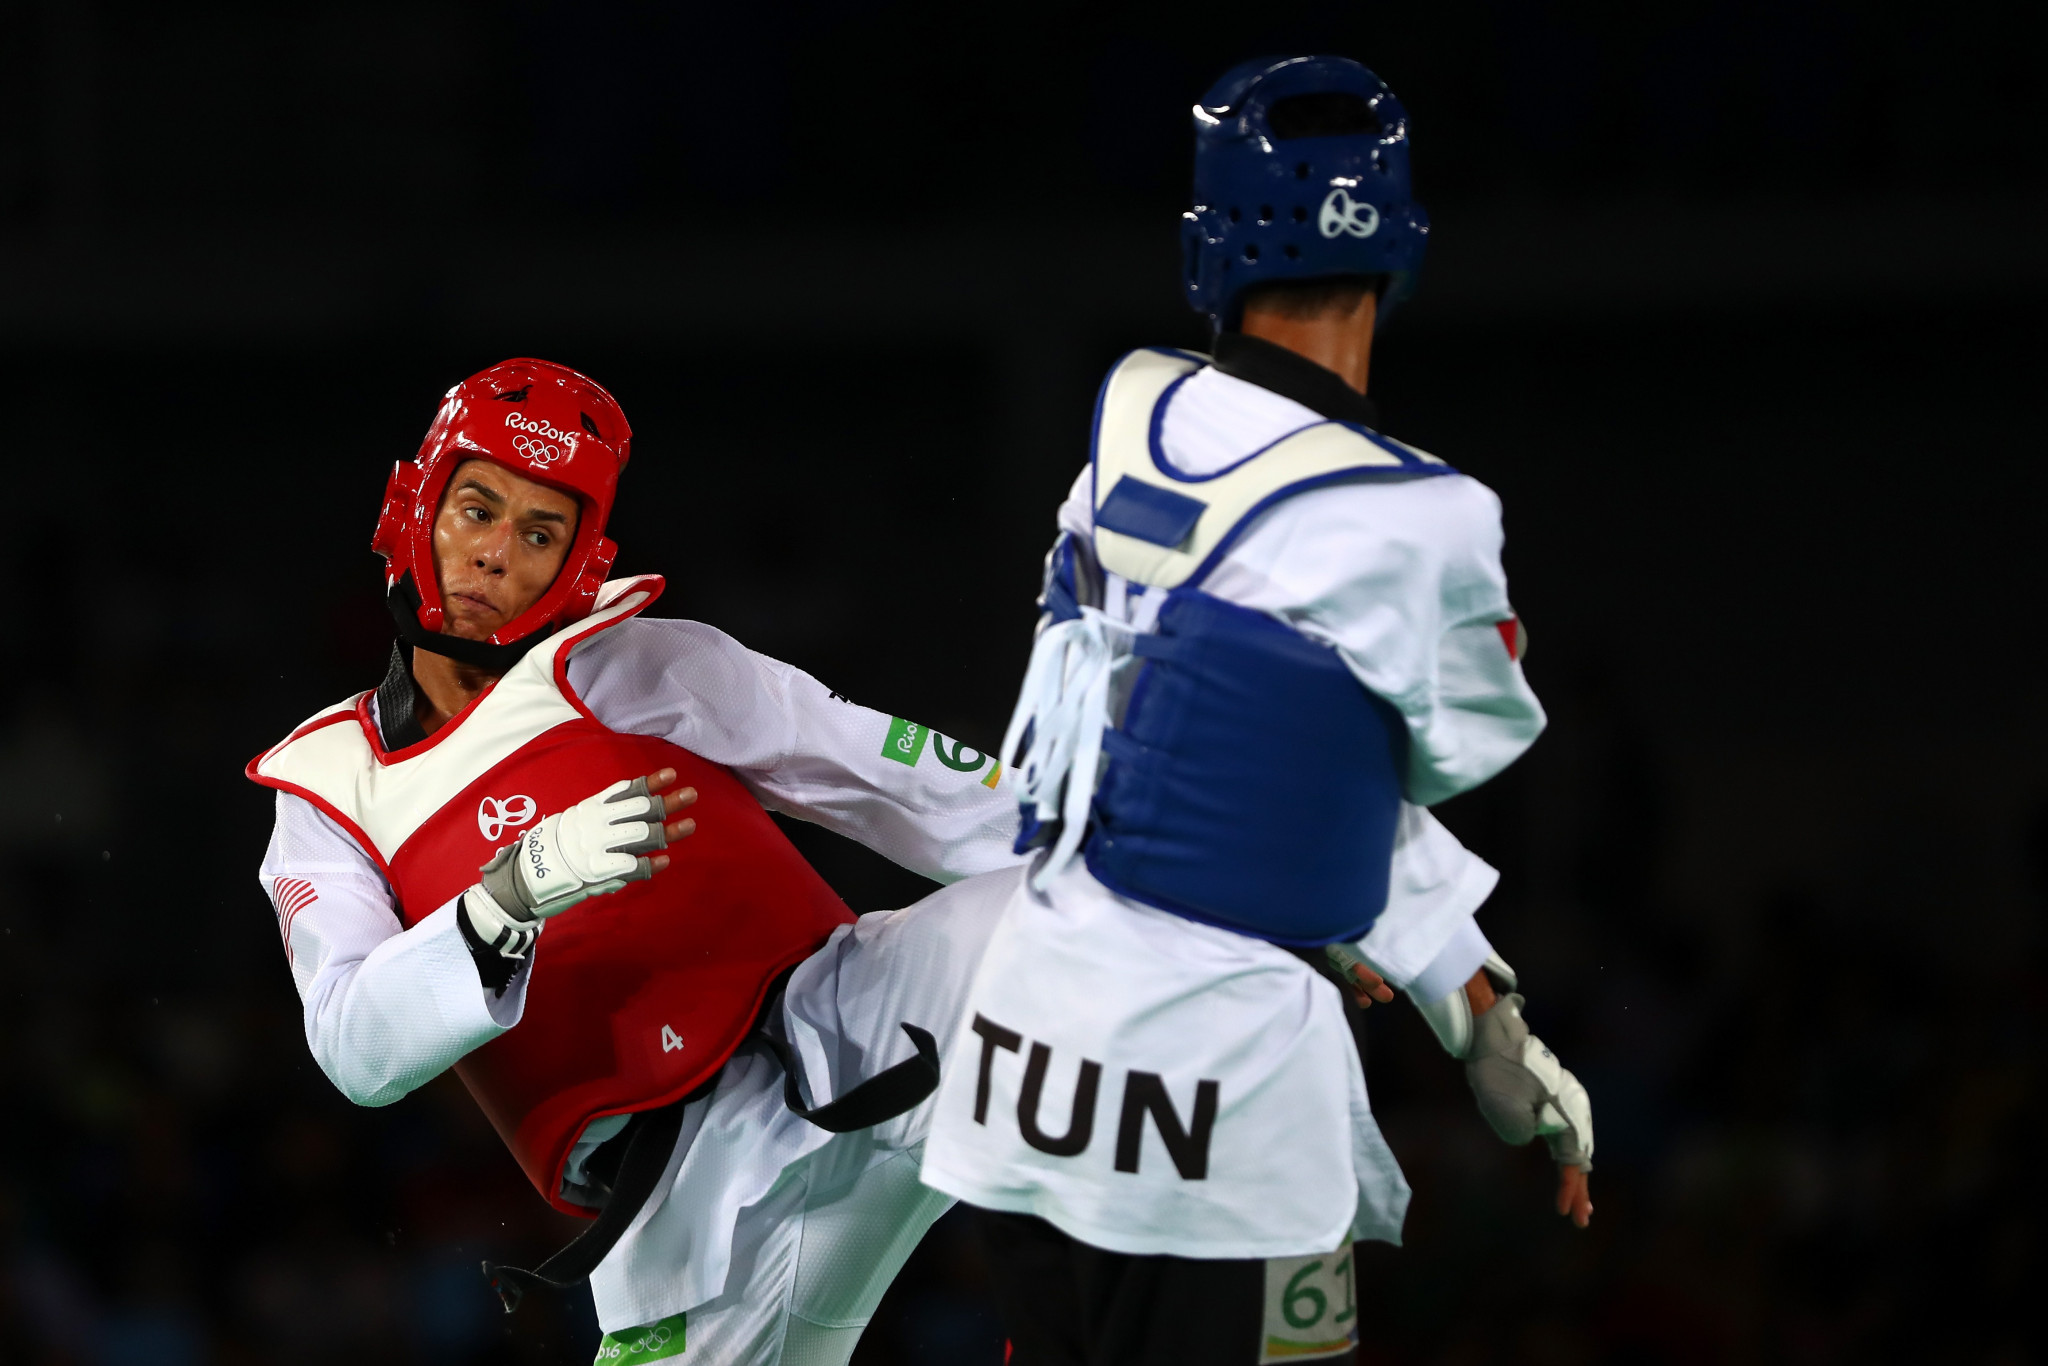 Double Olympic taekwondo gold medallist and brother accused in American court of sexual abuse